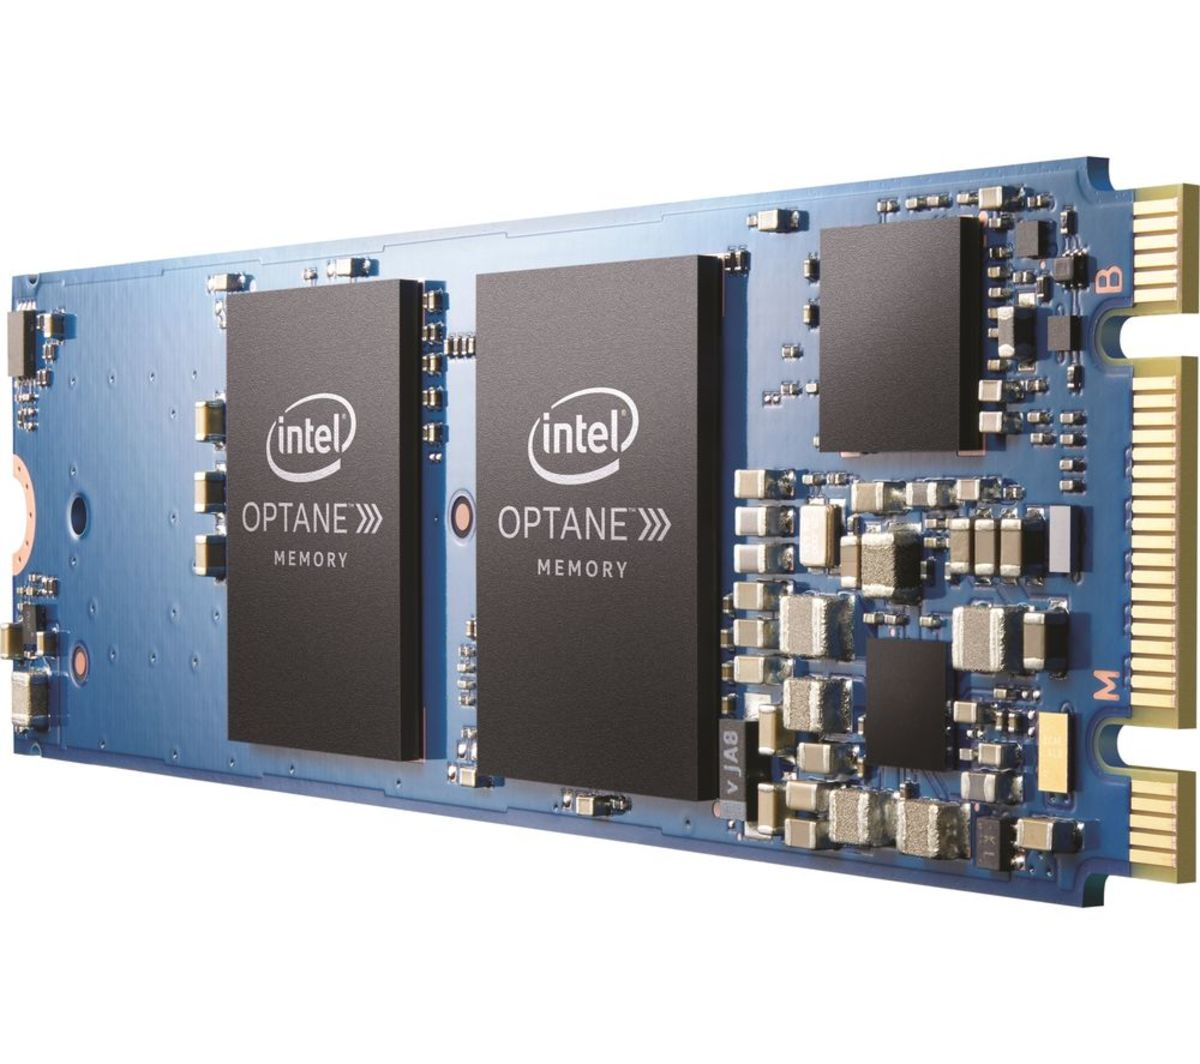 Intel Optane Memory technology reduces loading time and improves execution times when playing games or multitasking.